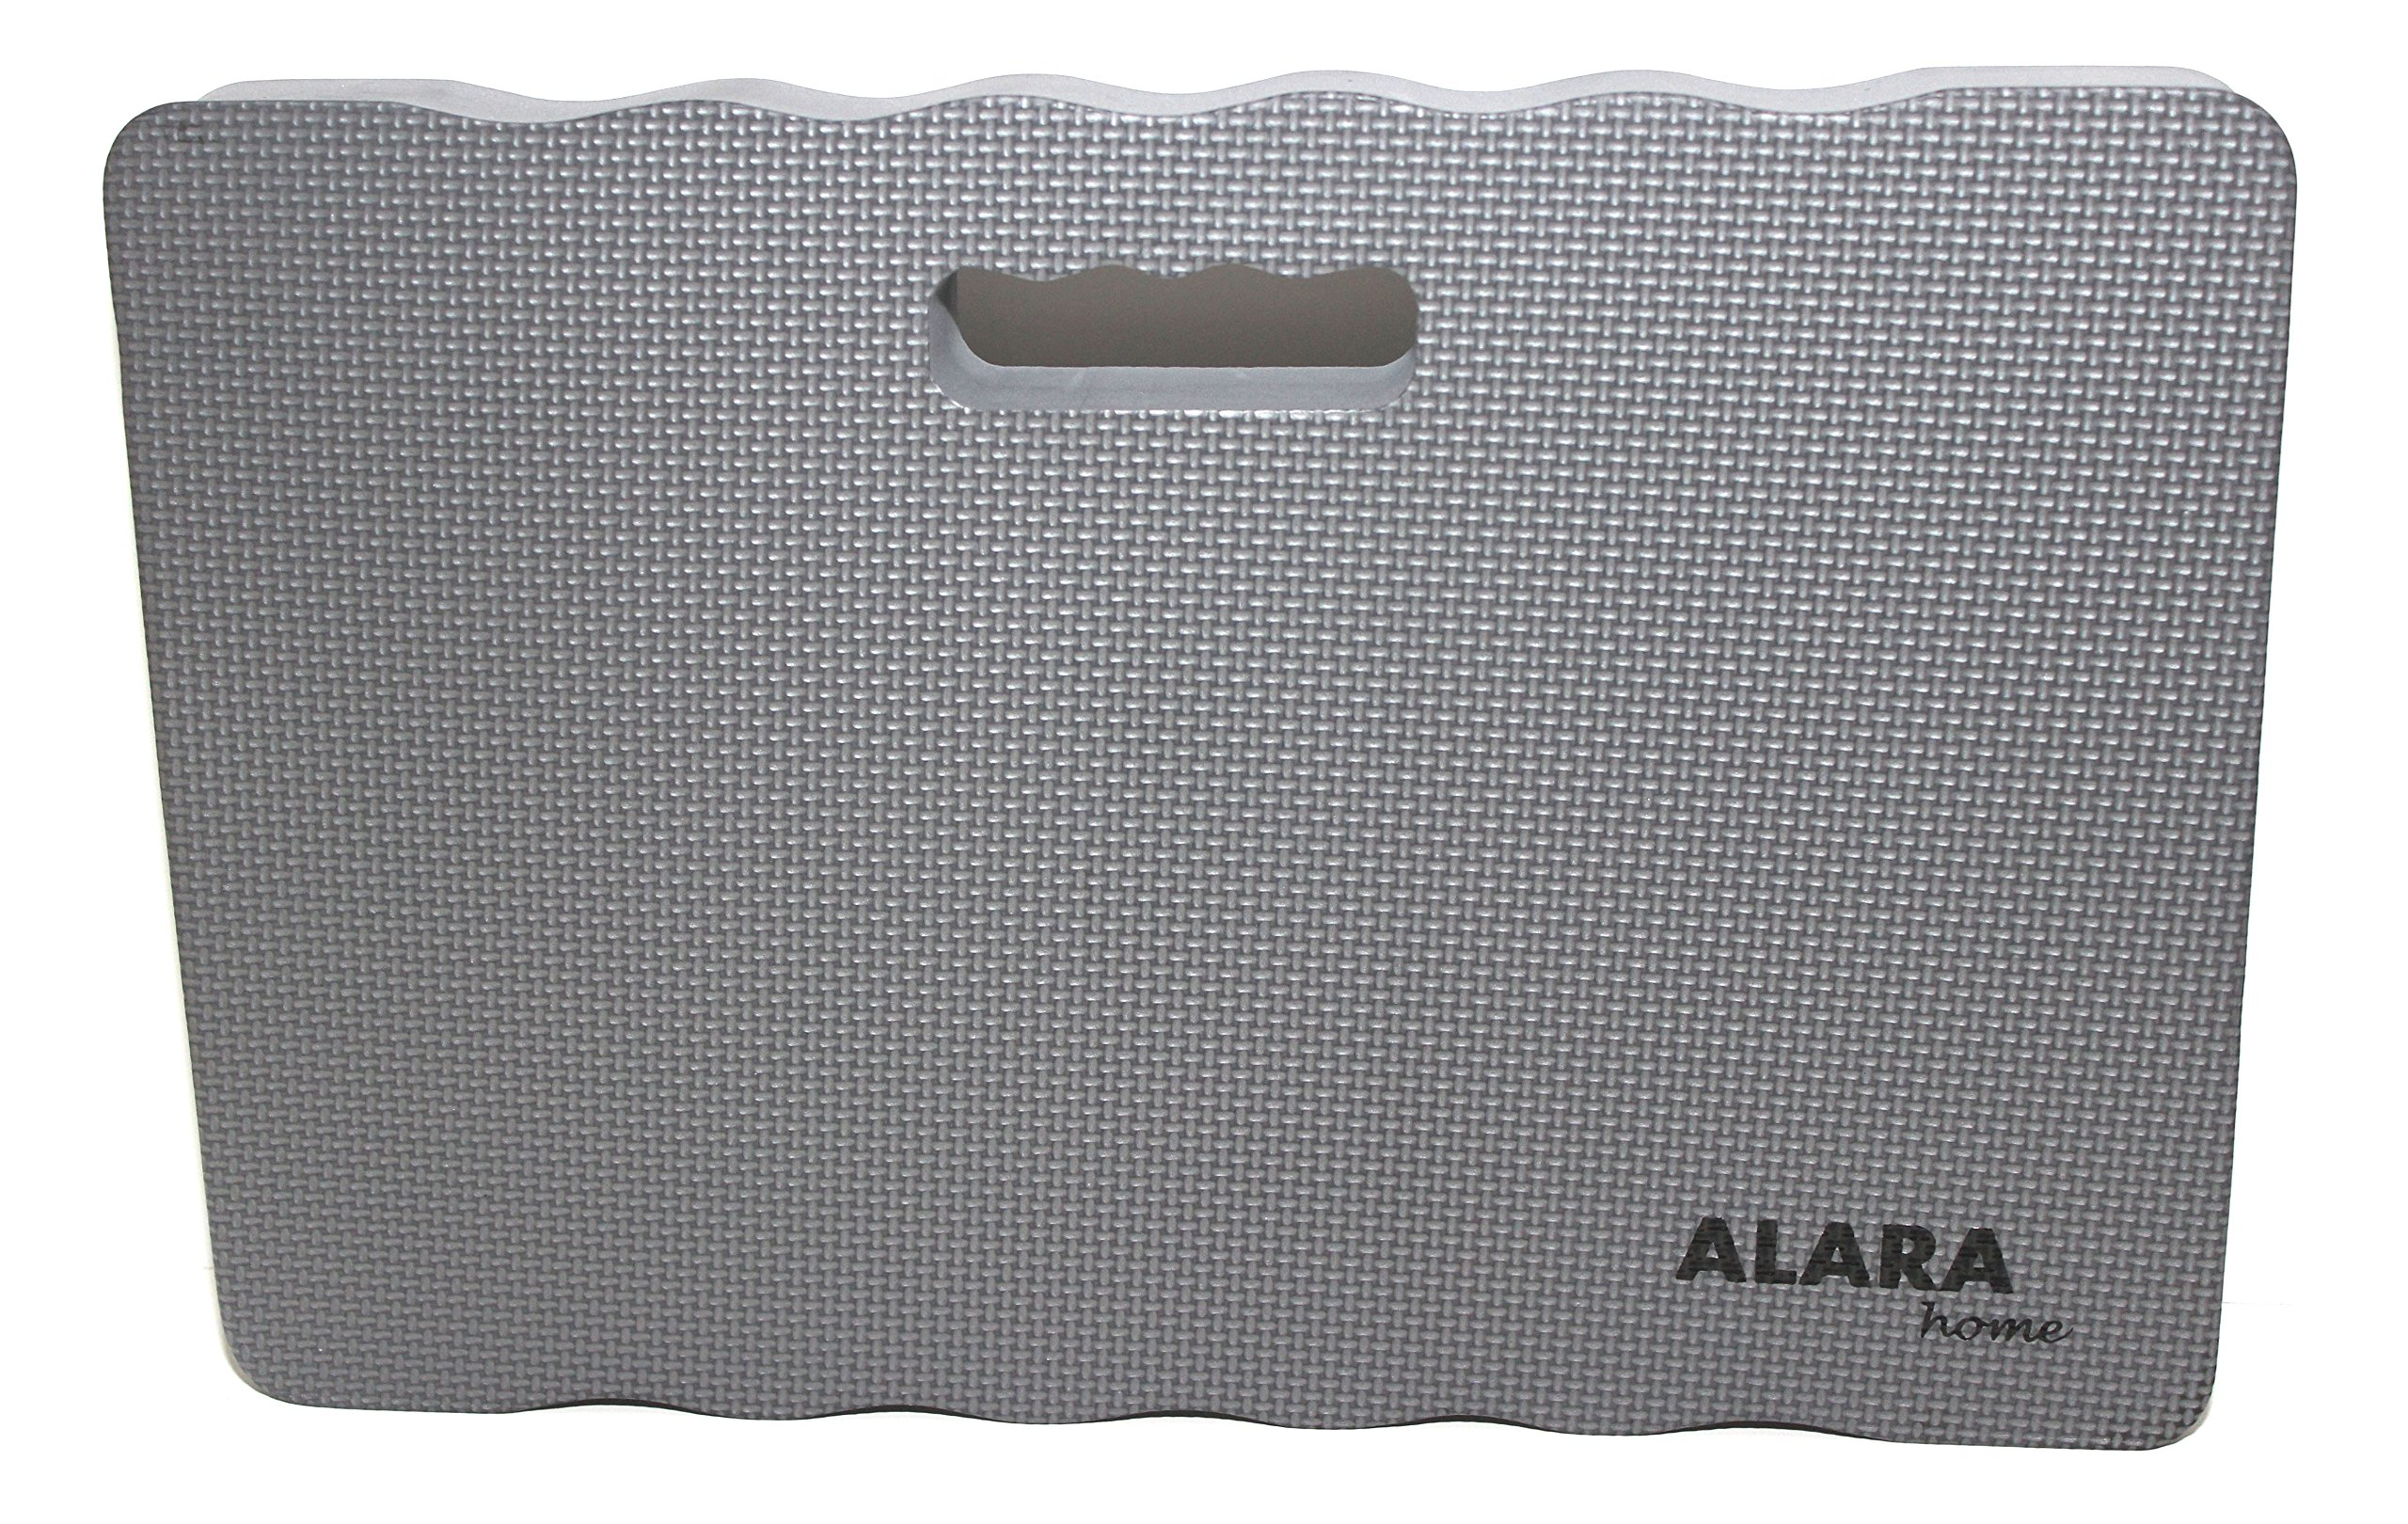 ALARA HOME Extra Thick Kneeling PAD - Garden Kneeler for Gardening, Baby Bath, Kneeling MAT for Exercise - Extra Large 18X11, THICKEST 1-1/2''. Thicker Than Most Other Knee Pads for Knee Protection by ALARA HOME